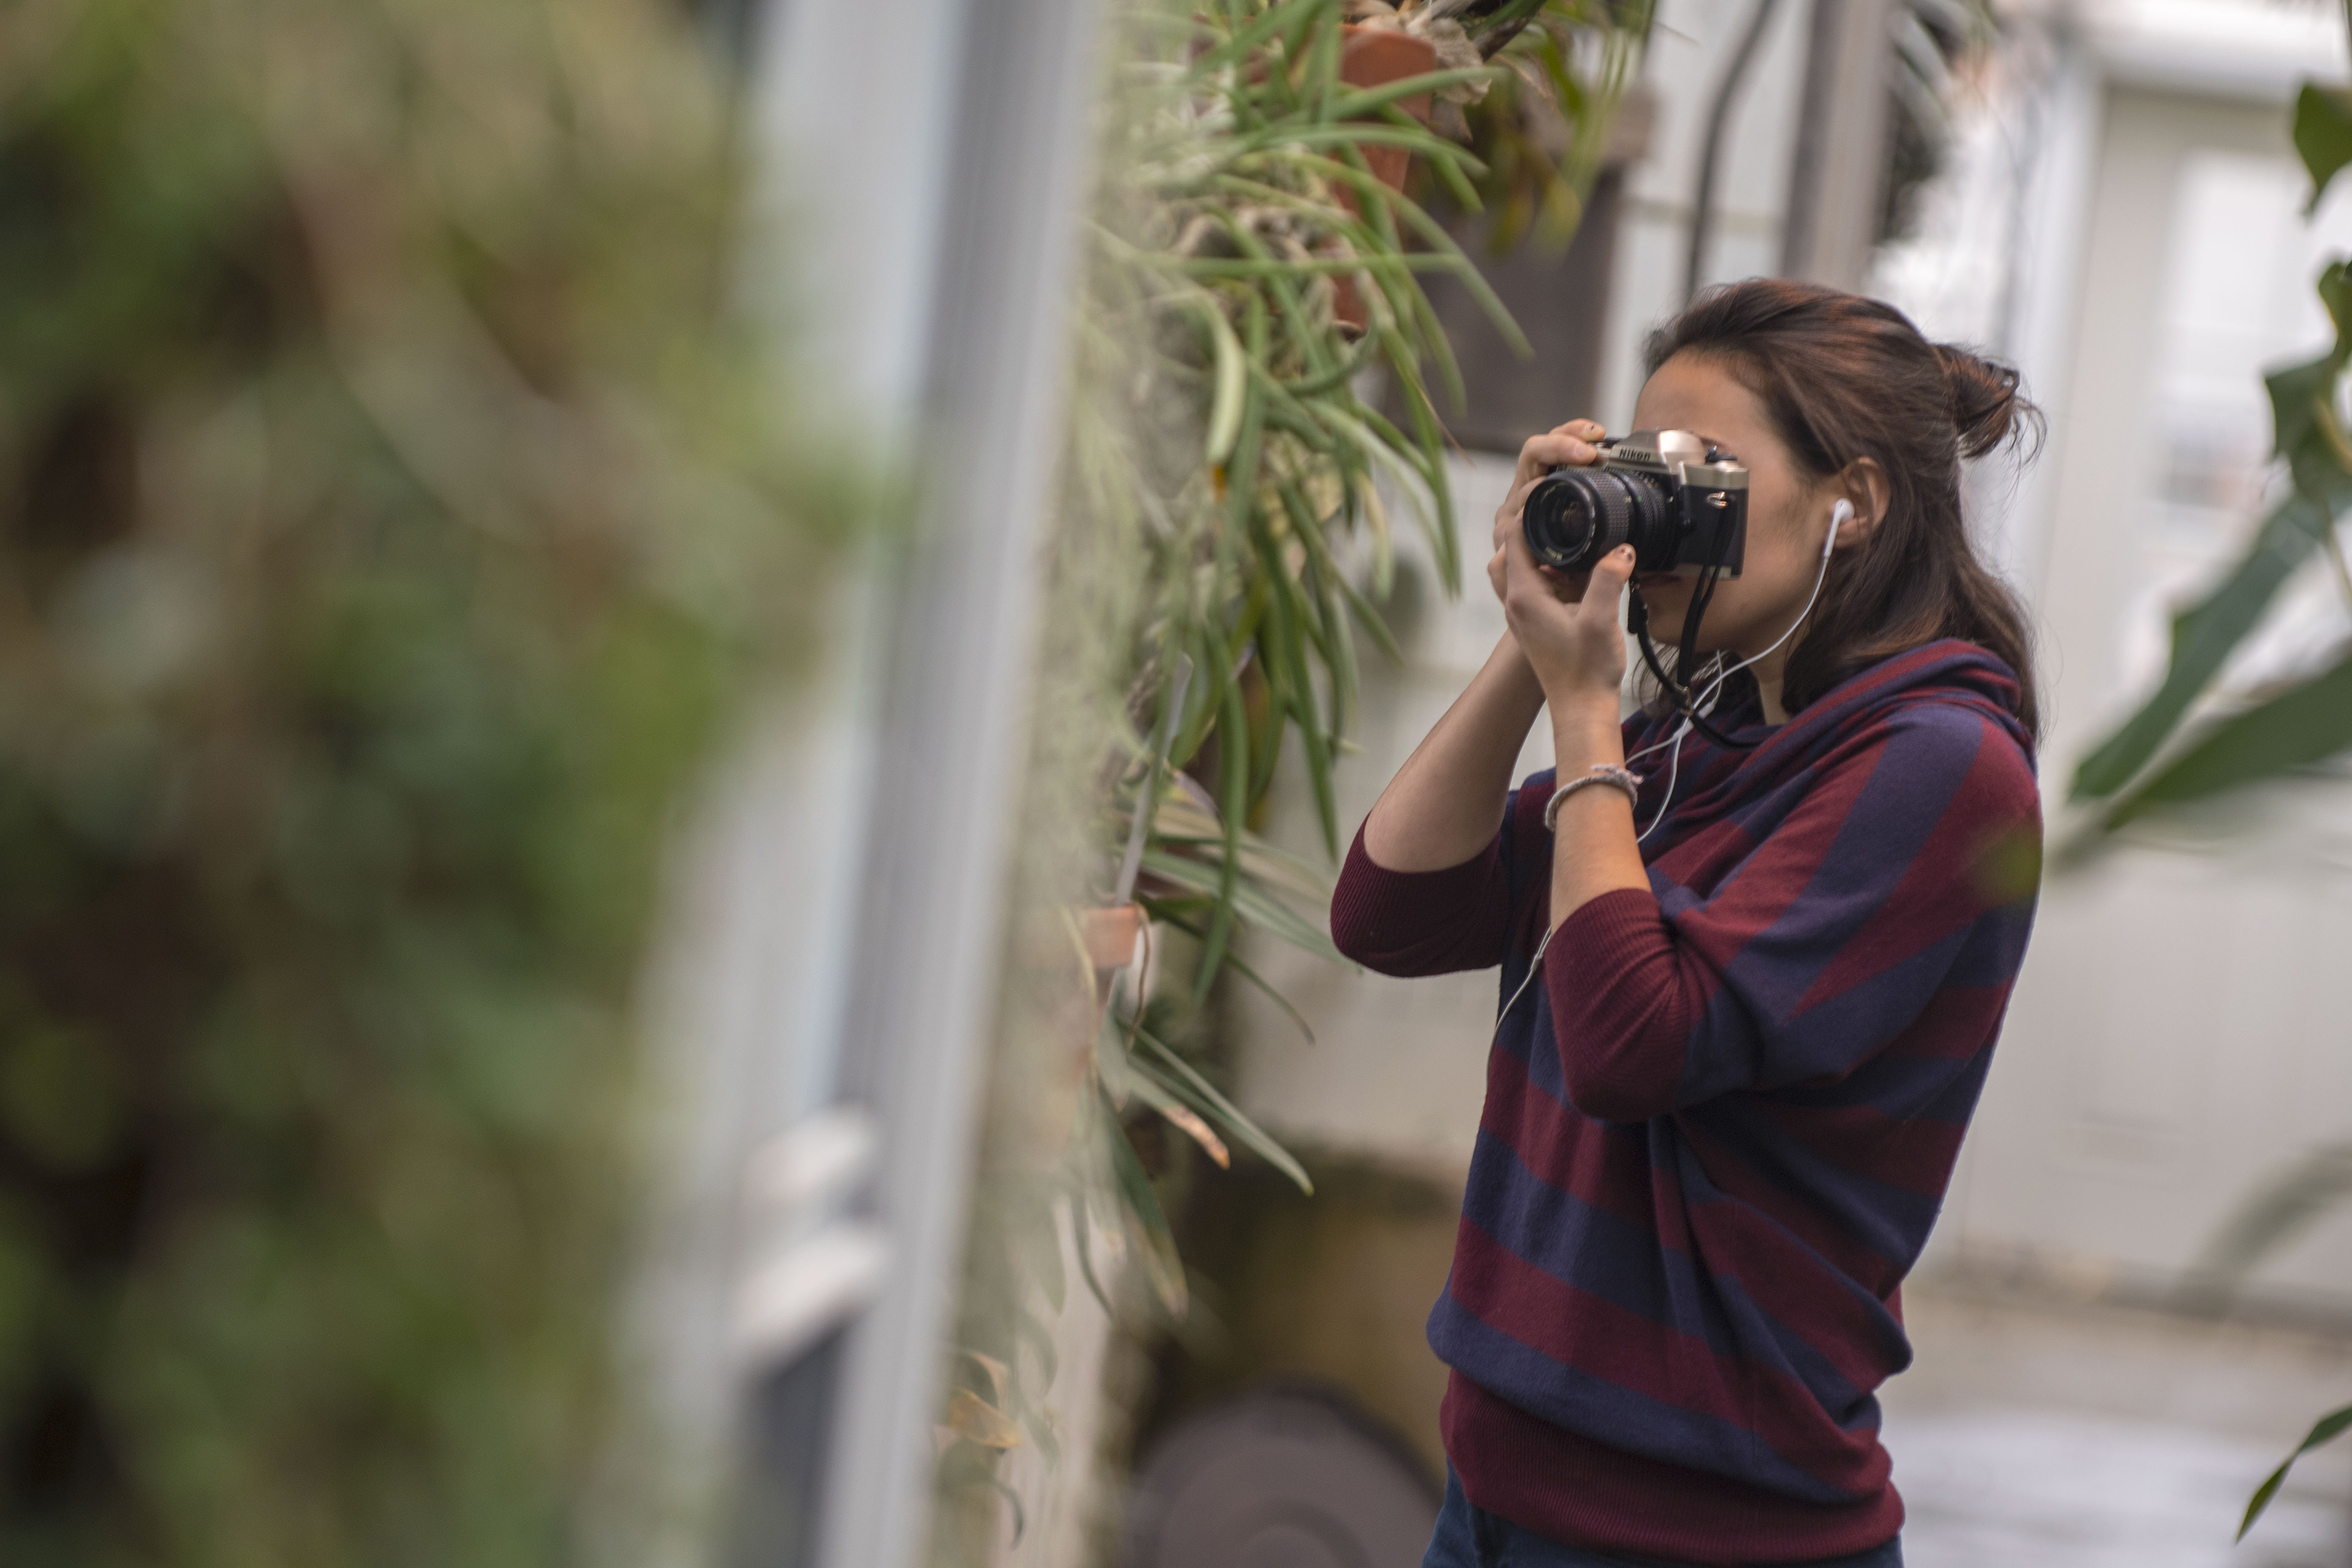 Marissa Aldieri '18 (CLAS), an individualized major, takes photos for Intermediate Photography taught by Kaleigh Rusgrove at the UConn Biodiversity Education and Research Greenhouses on Feb. 12, 2018. (Garrett Spahn '18 (CLAS)/UConn Photo)